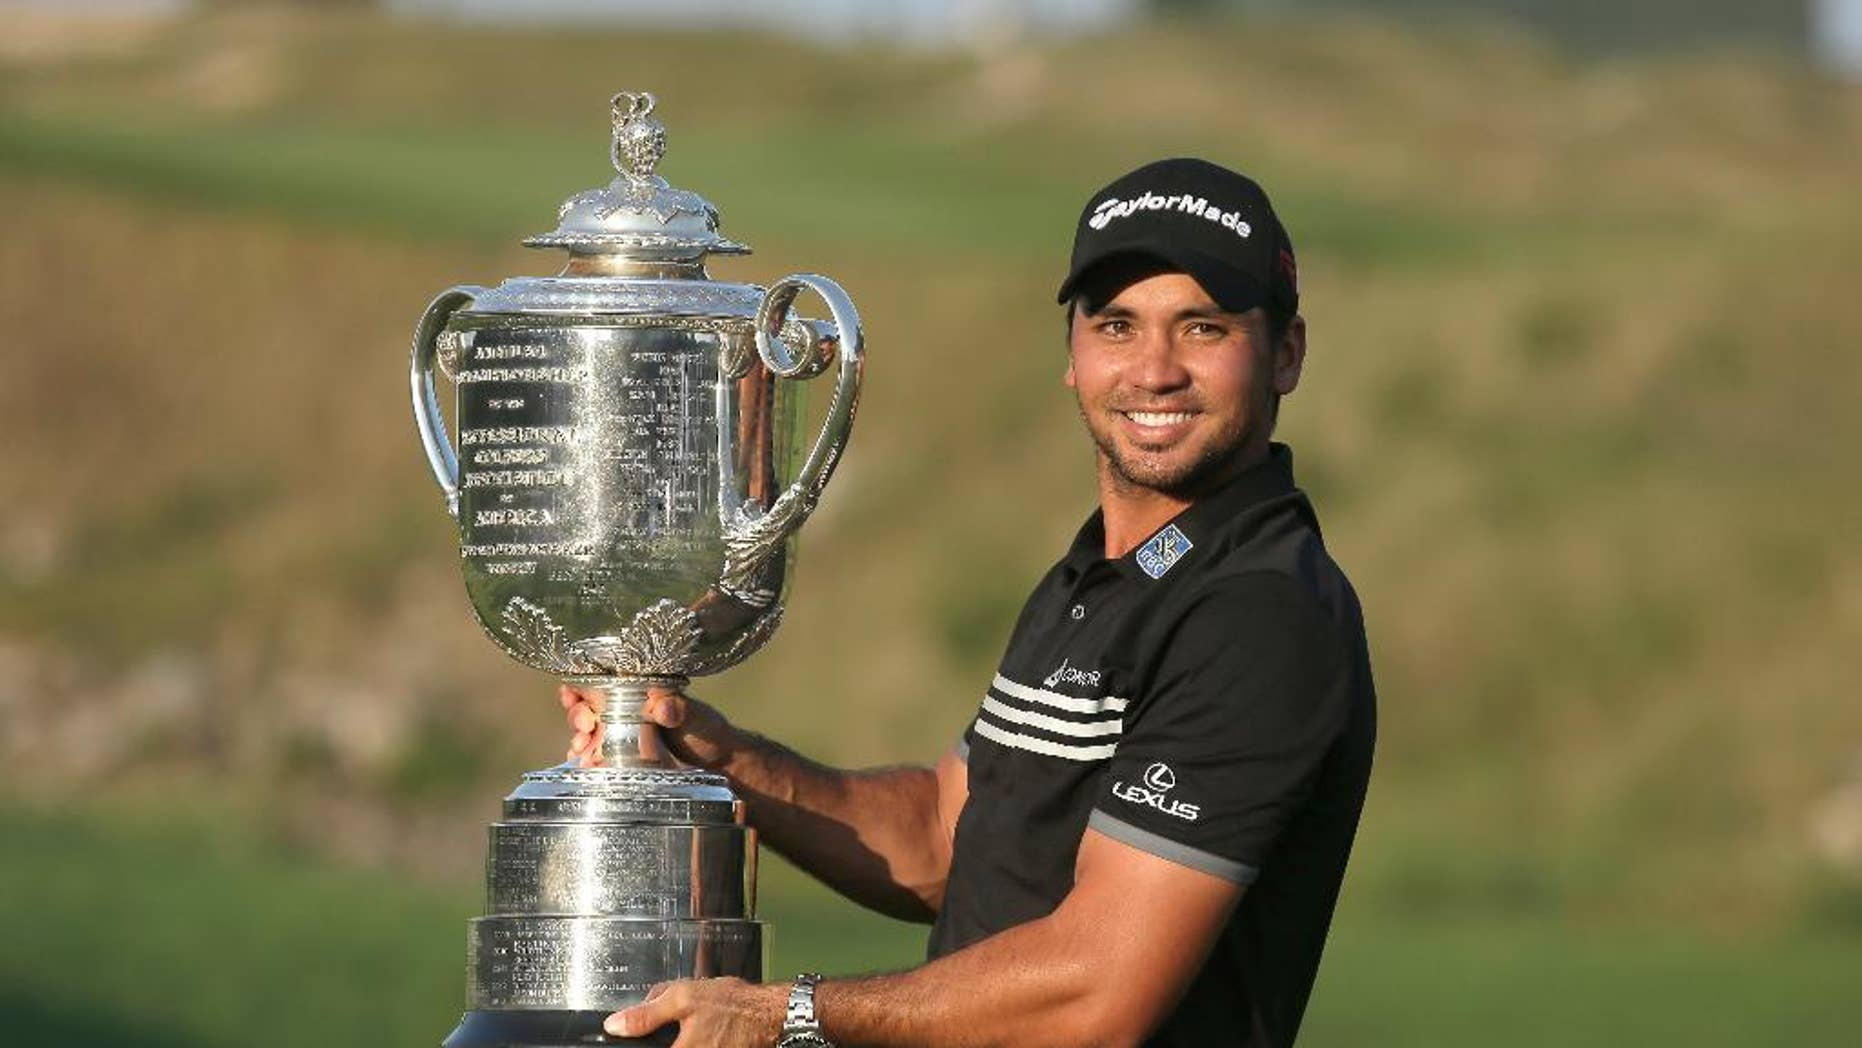 Jason Day, of Australia, holds up the Wanamaker Trophy after winning the PGA Championship golf tournament Sunday, Aug. 16, 2015, at Whistling Straits in Haven, Wis. (AP Photo/Chris Carlson)